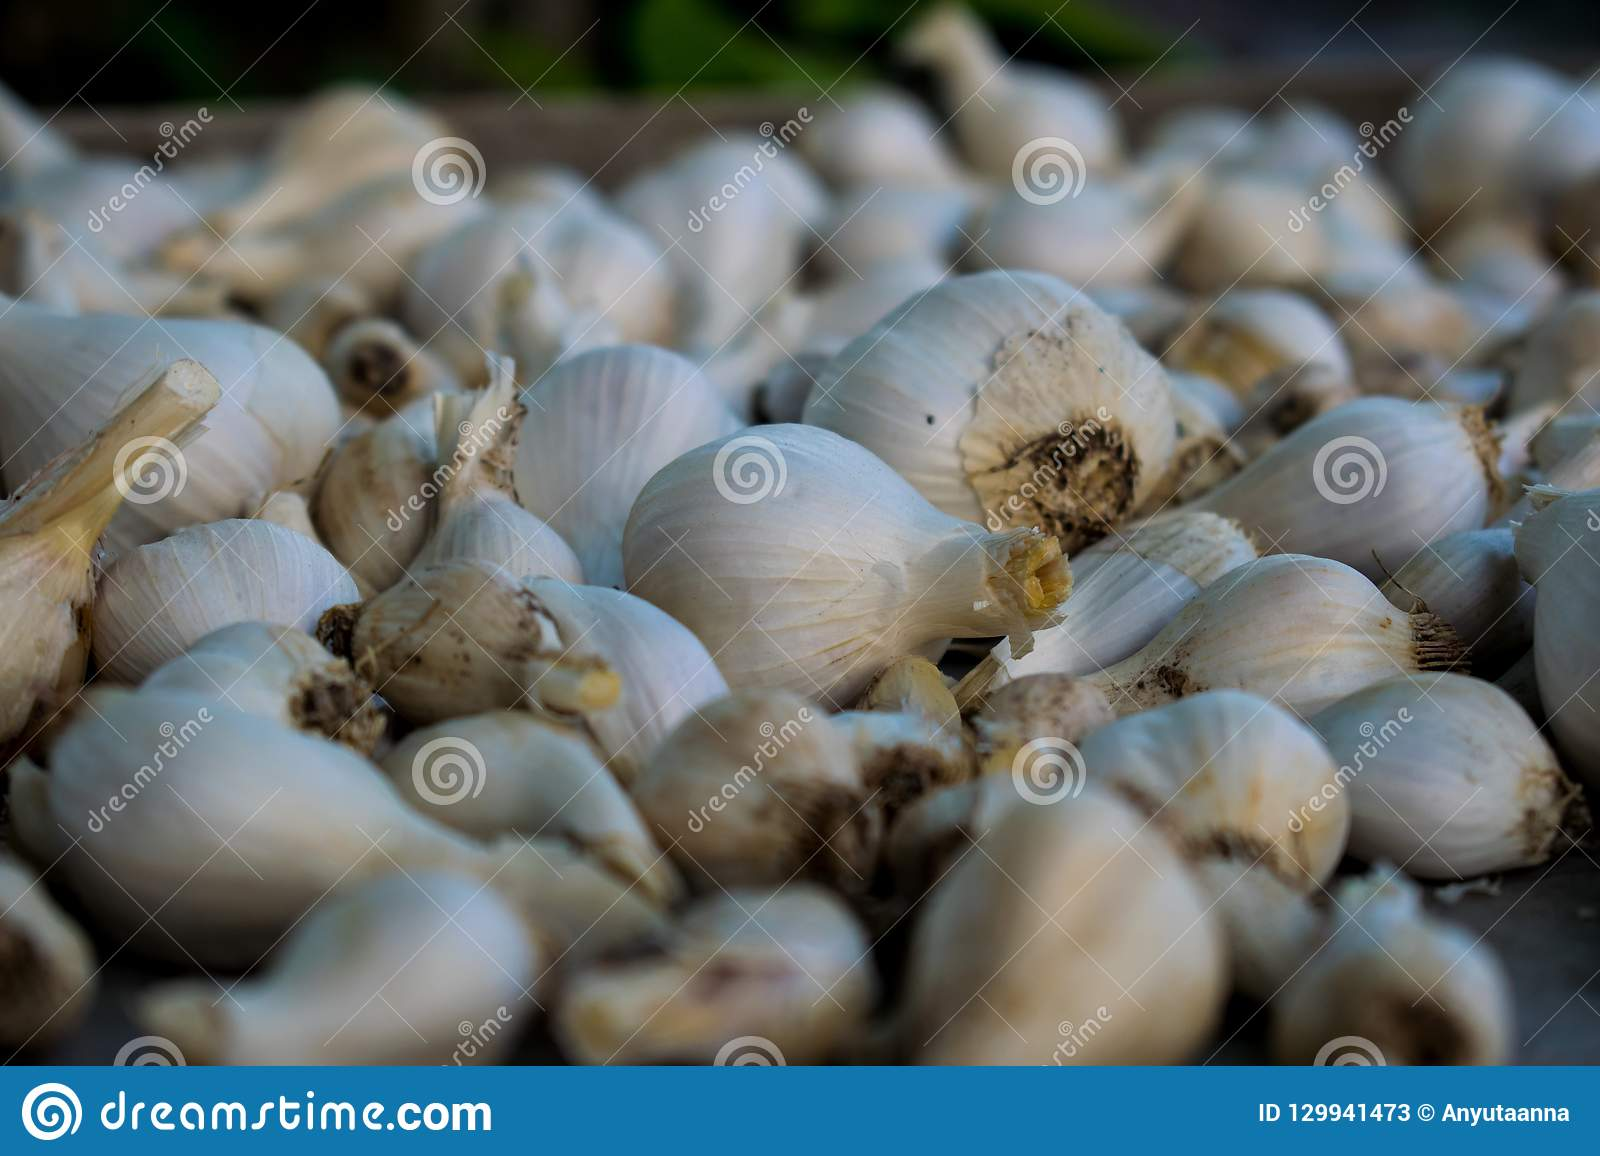 Lots of garlic on a metal tray. White garlic heads in the husk